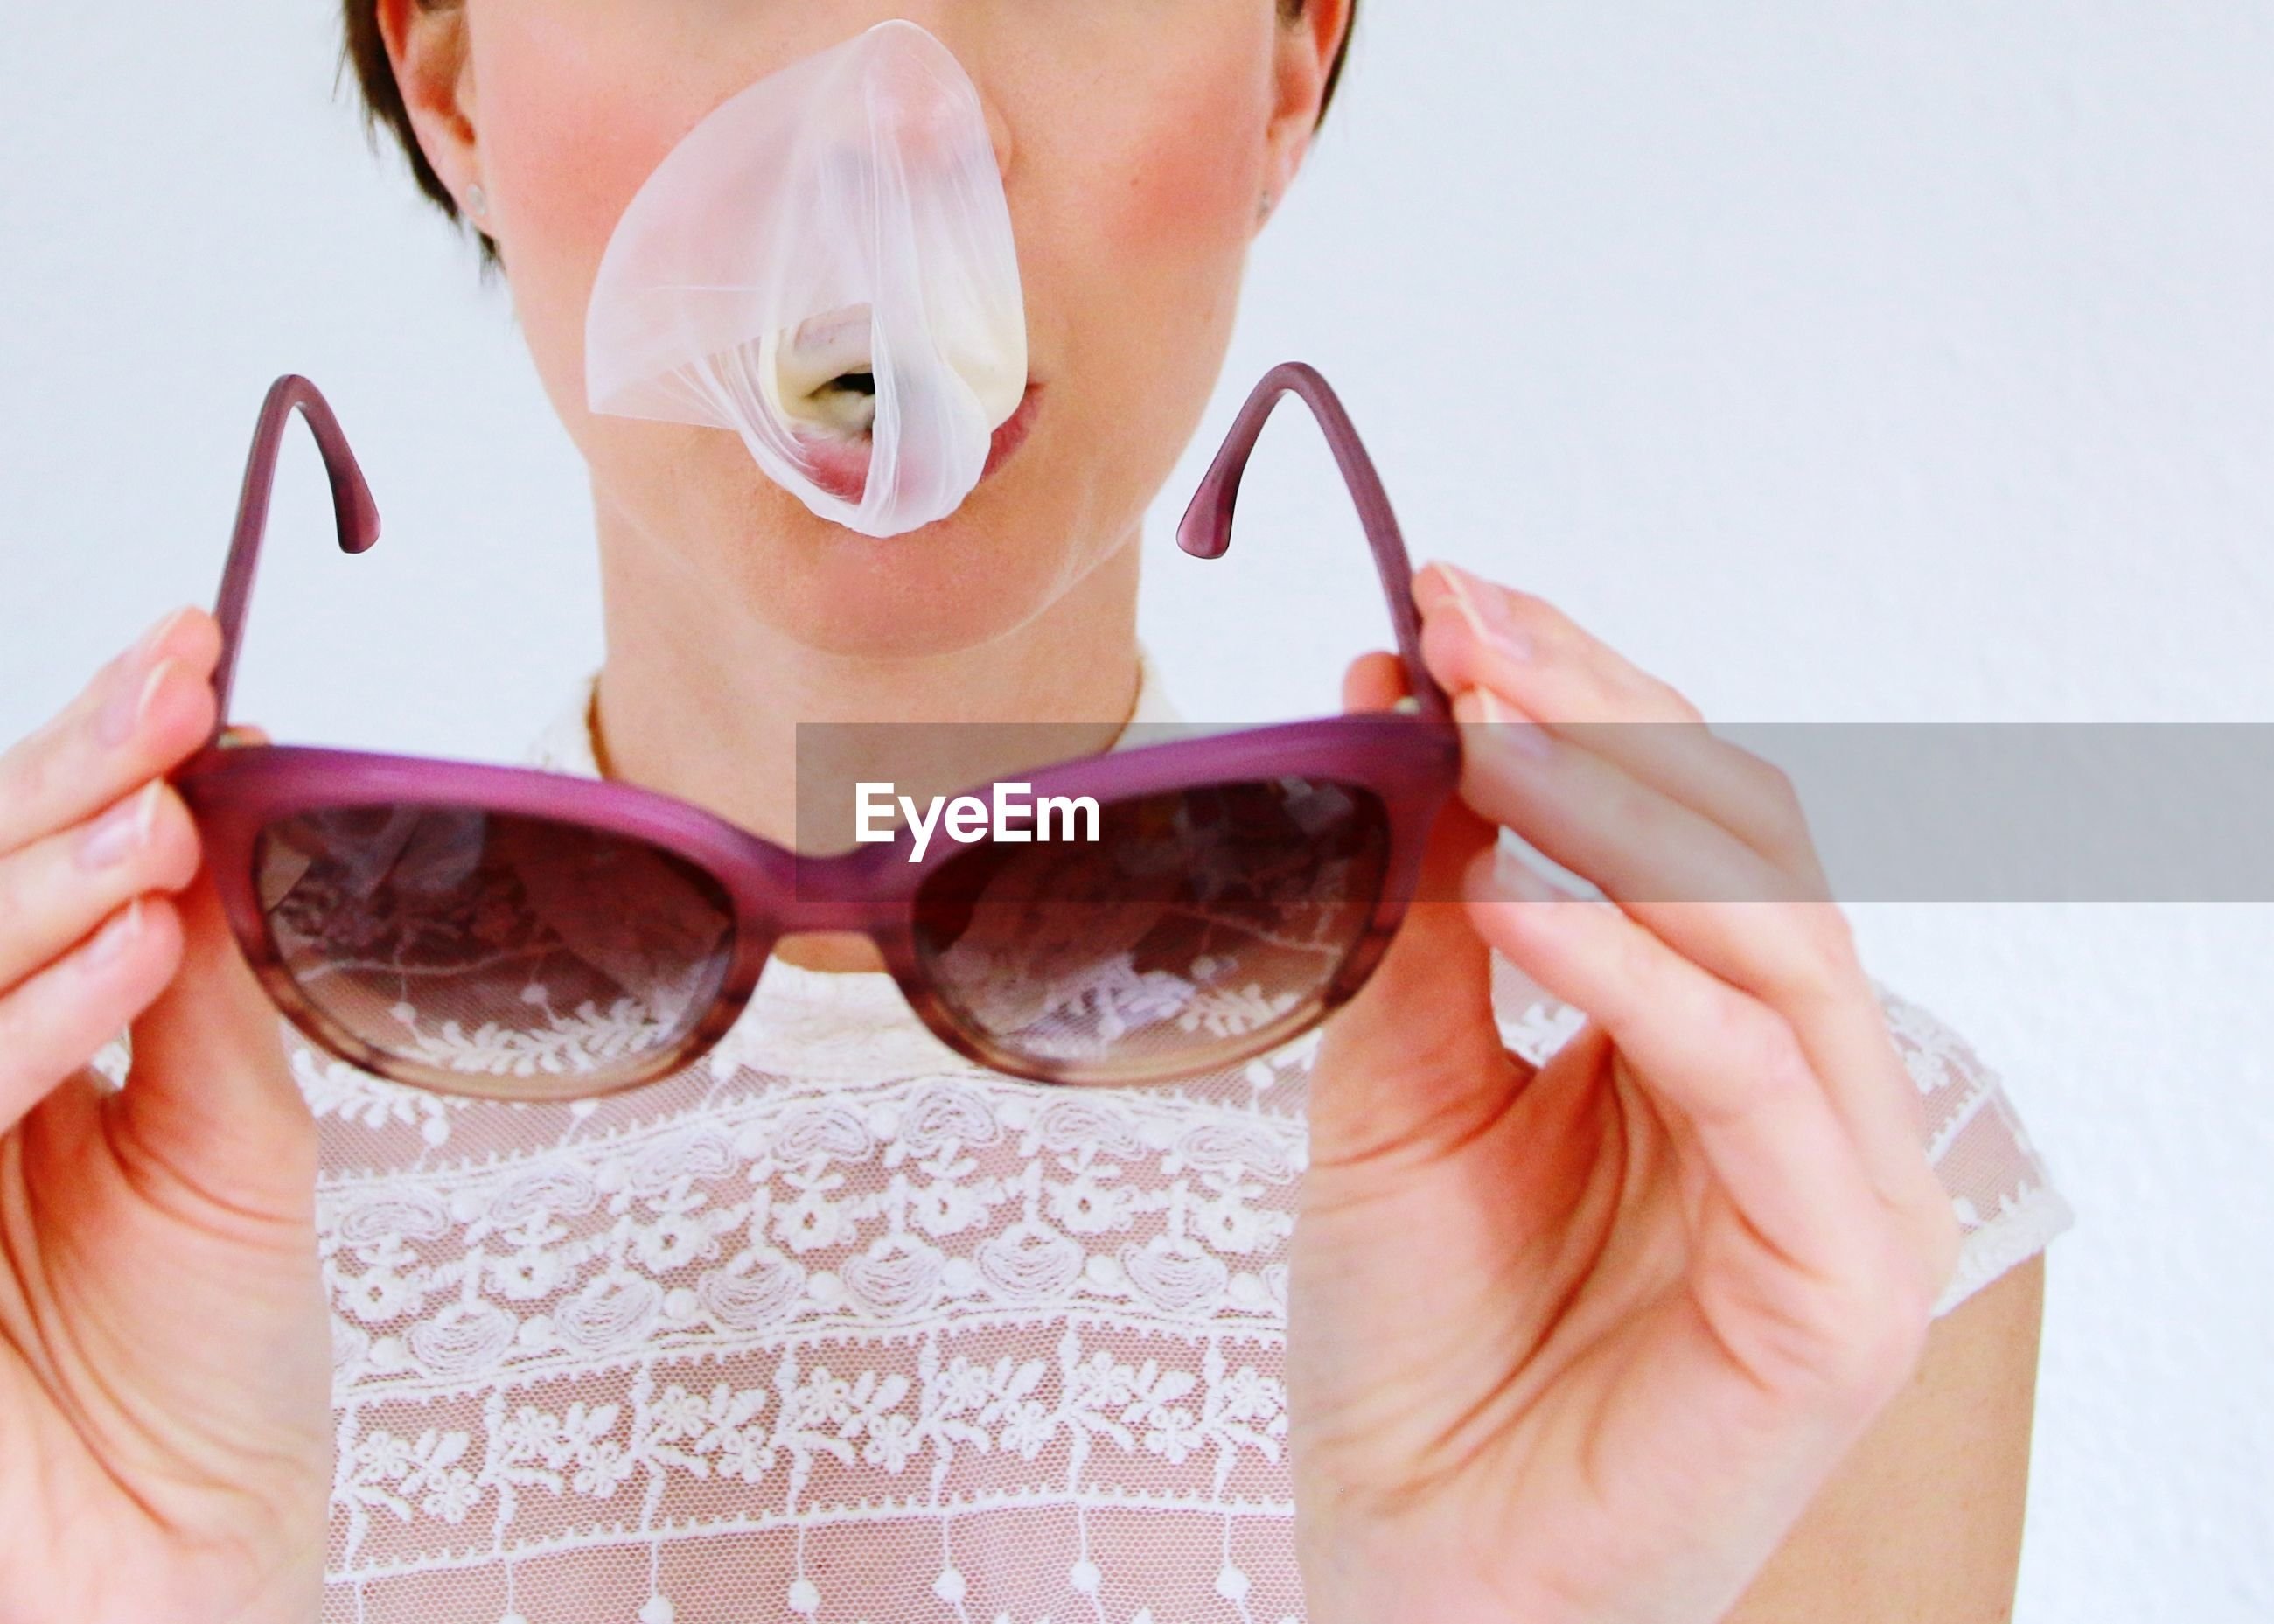 Midsection of woman holding sunglasses